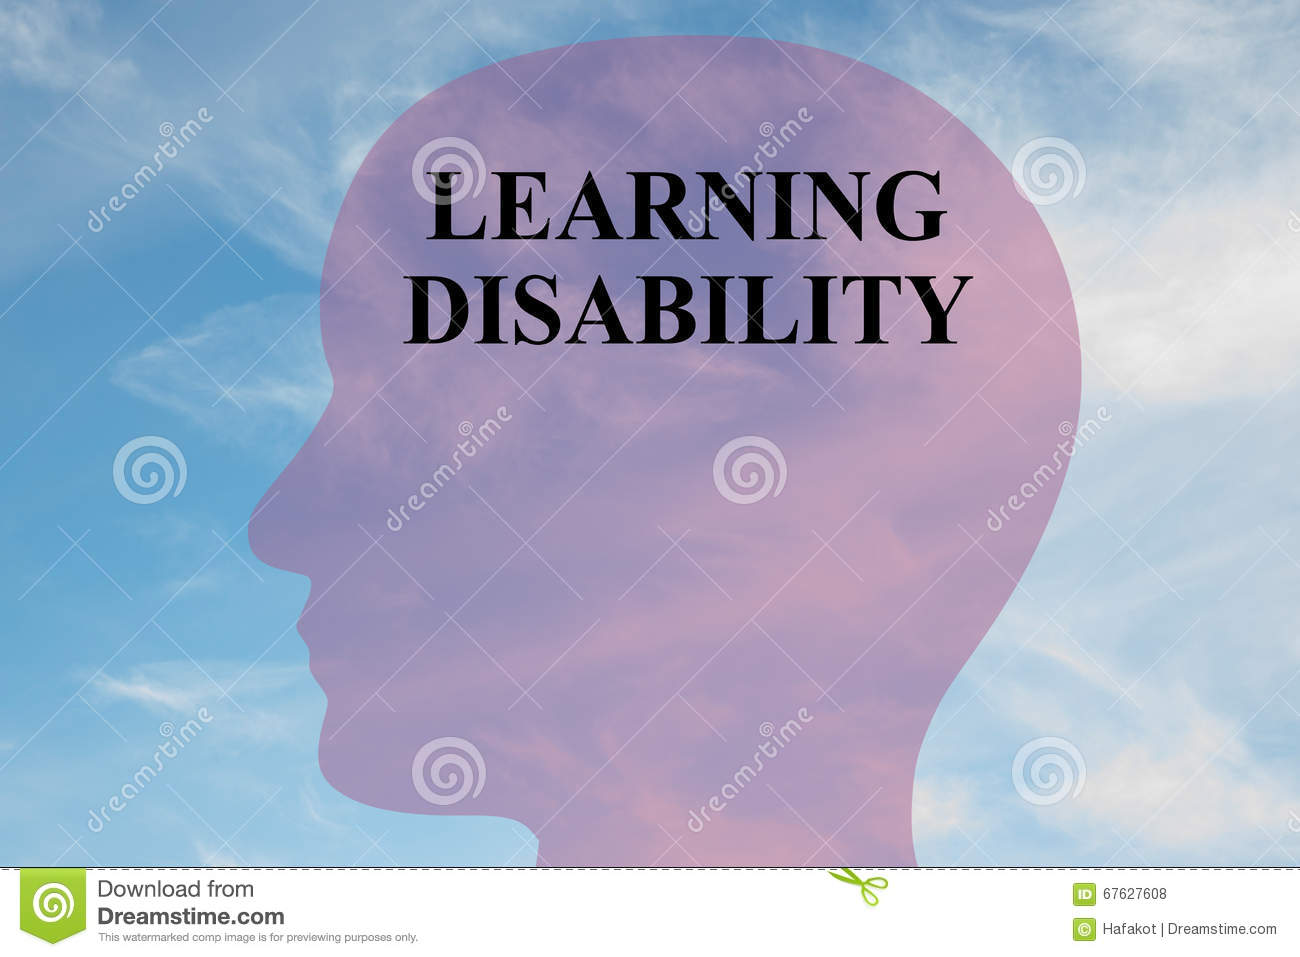 learning-disability-concept-render-illustration-title-head-silhouette-cloudy-sky-as-background-67627608.jpg?profile=RESIZE_400x